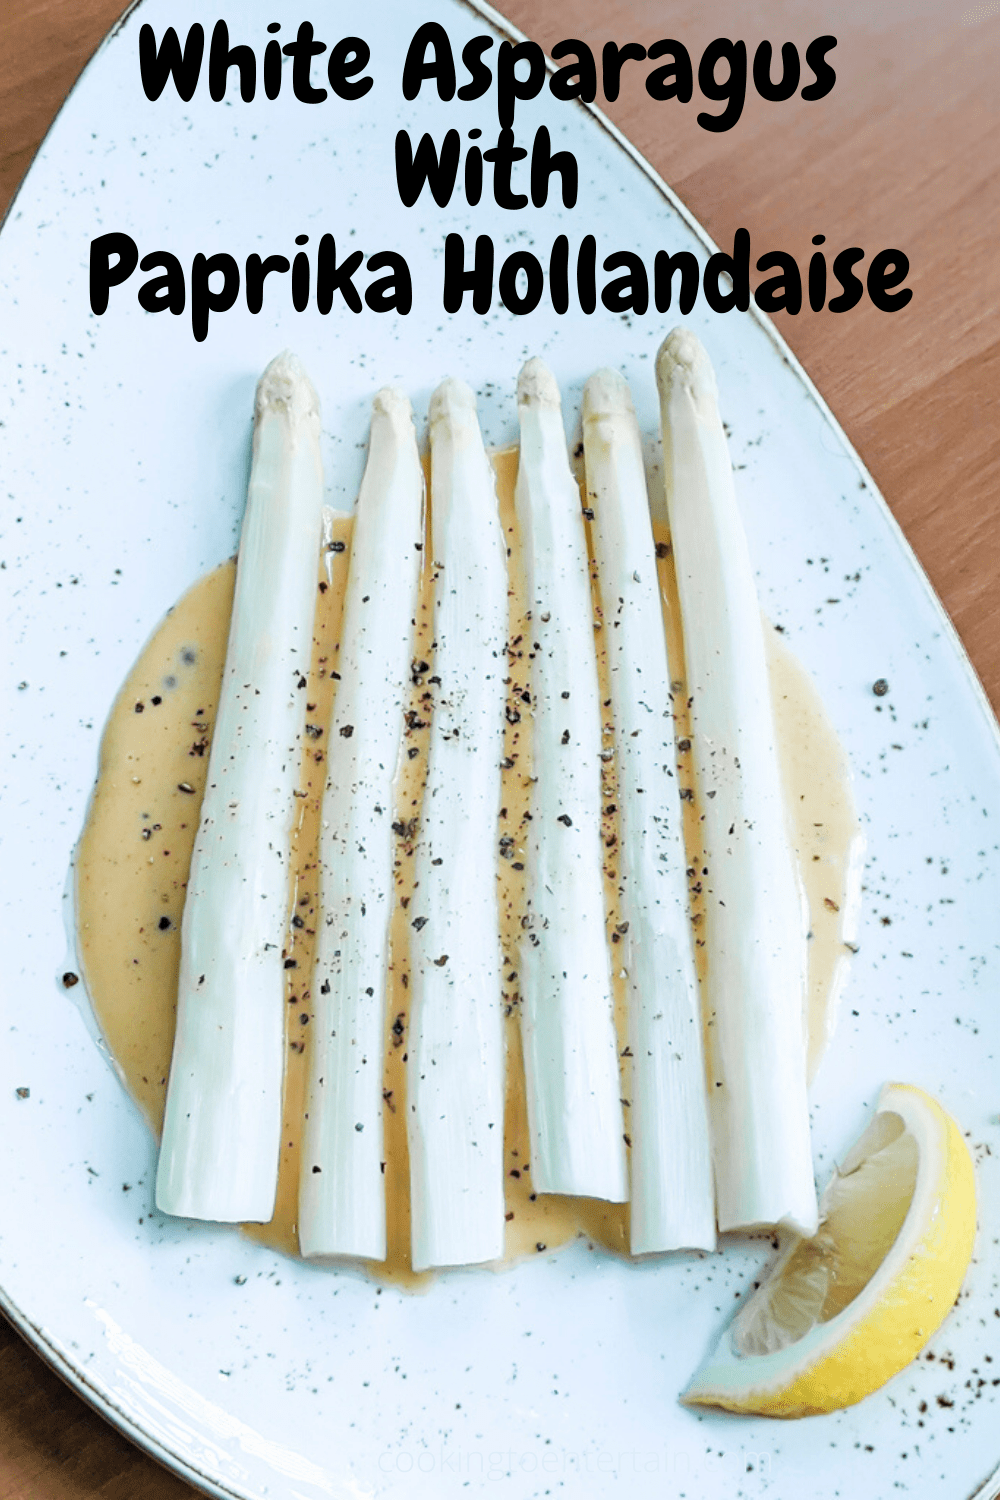 White Asparagus With Paprika Hollandaise Cooking To Entertain